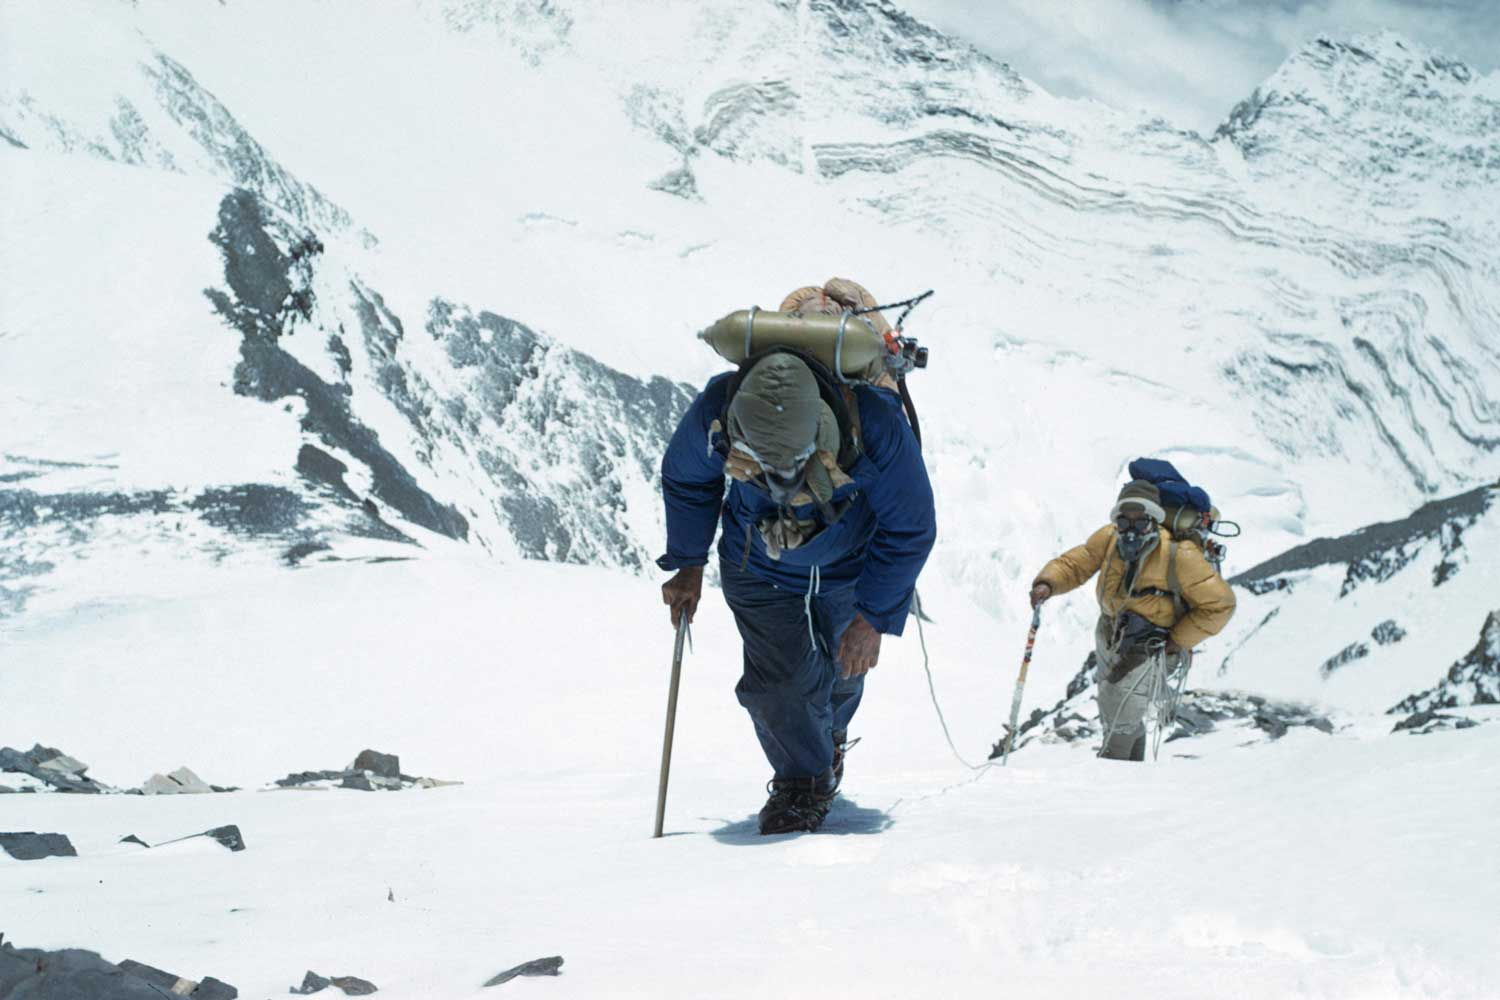 Sir Edmund Hillary and Sherpa Tenzing Norgay ascending Mt. Everest as part of Sir John Hunt's team